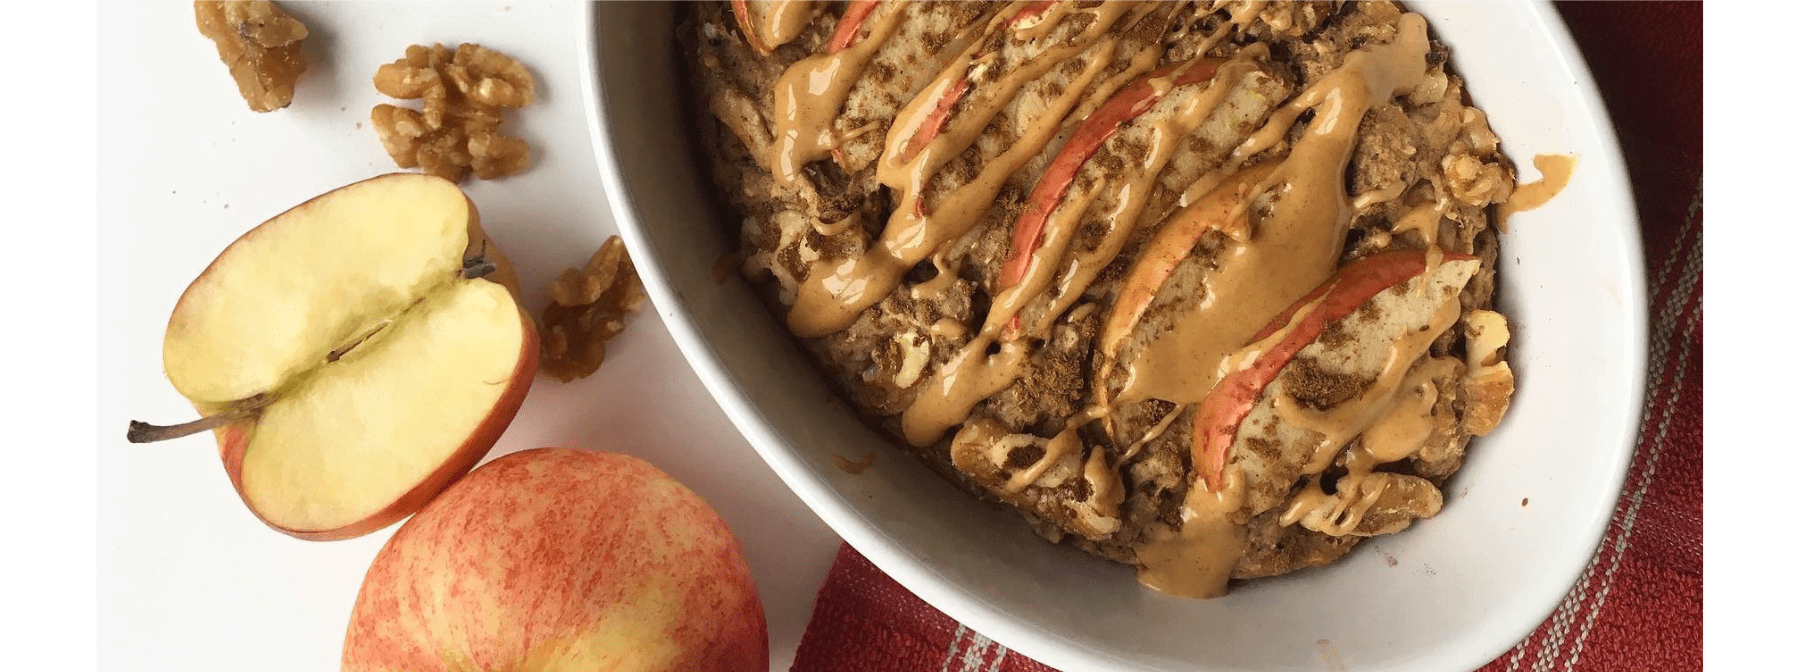 Apple, Cinnamon & Walnut Baked Protein Oats Recipe